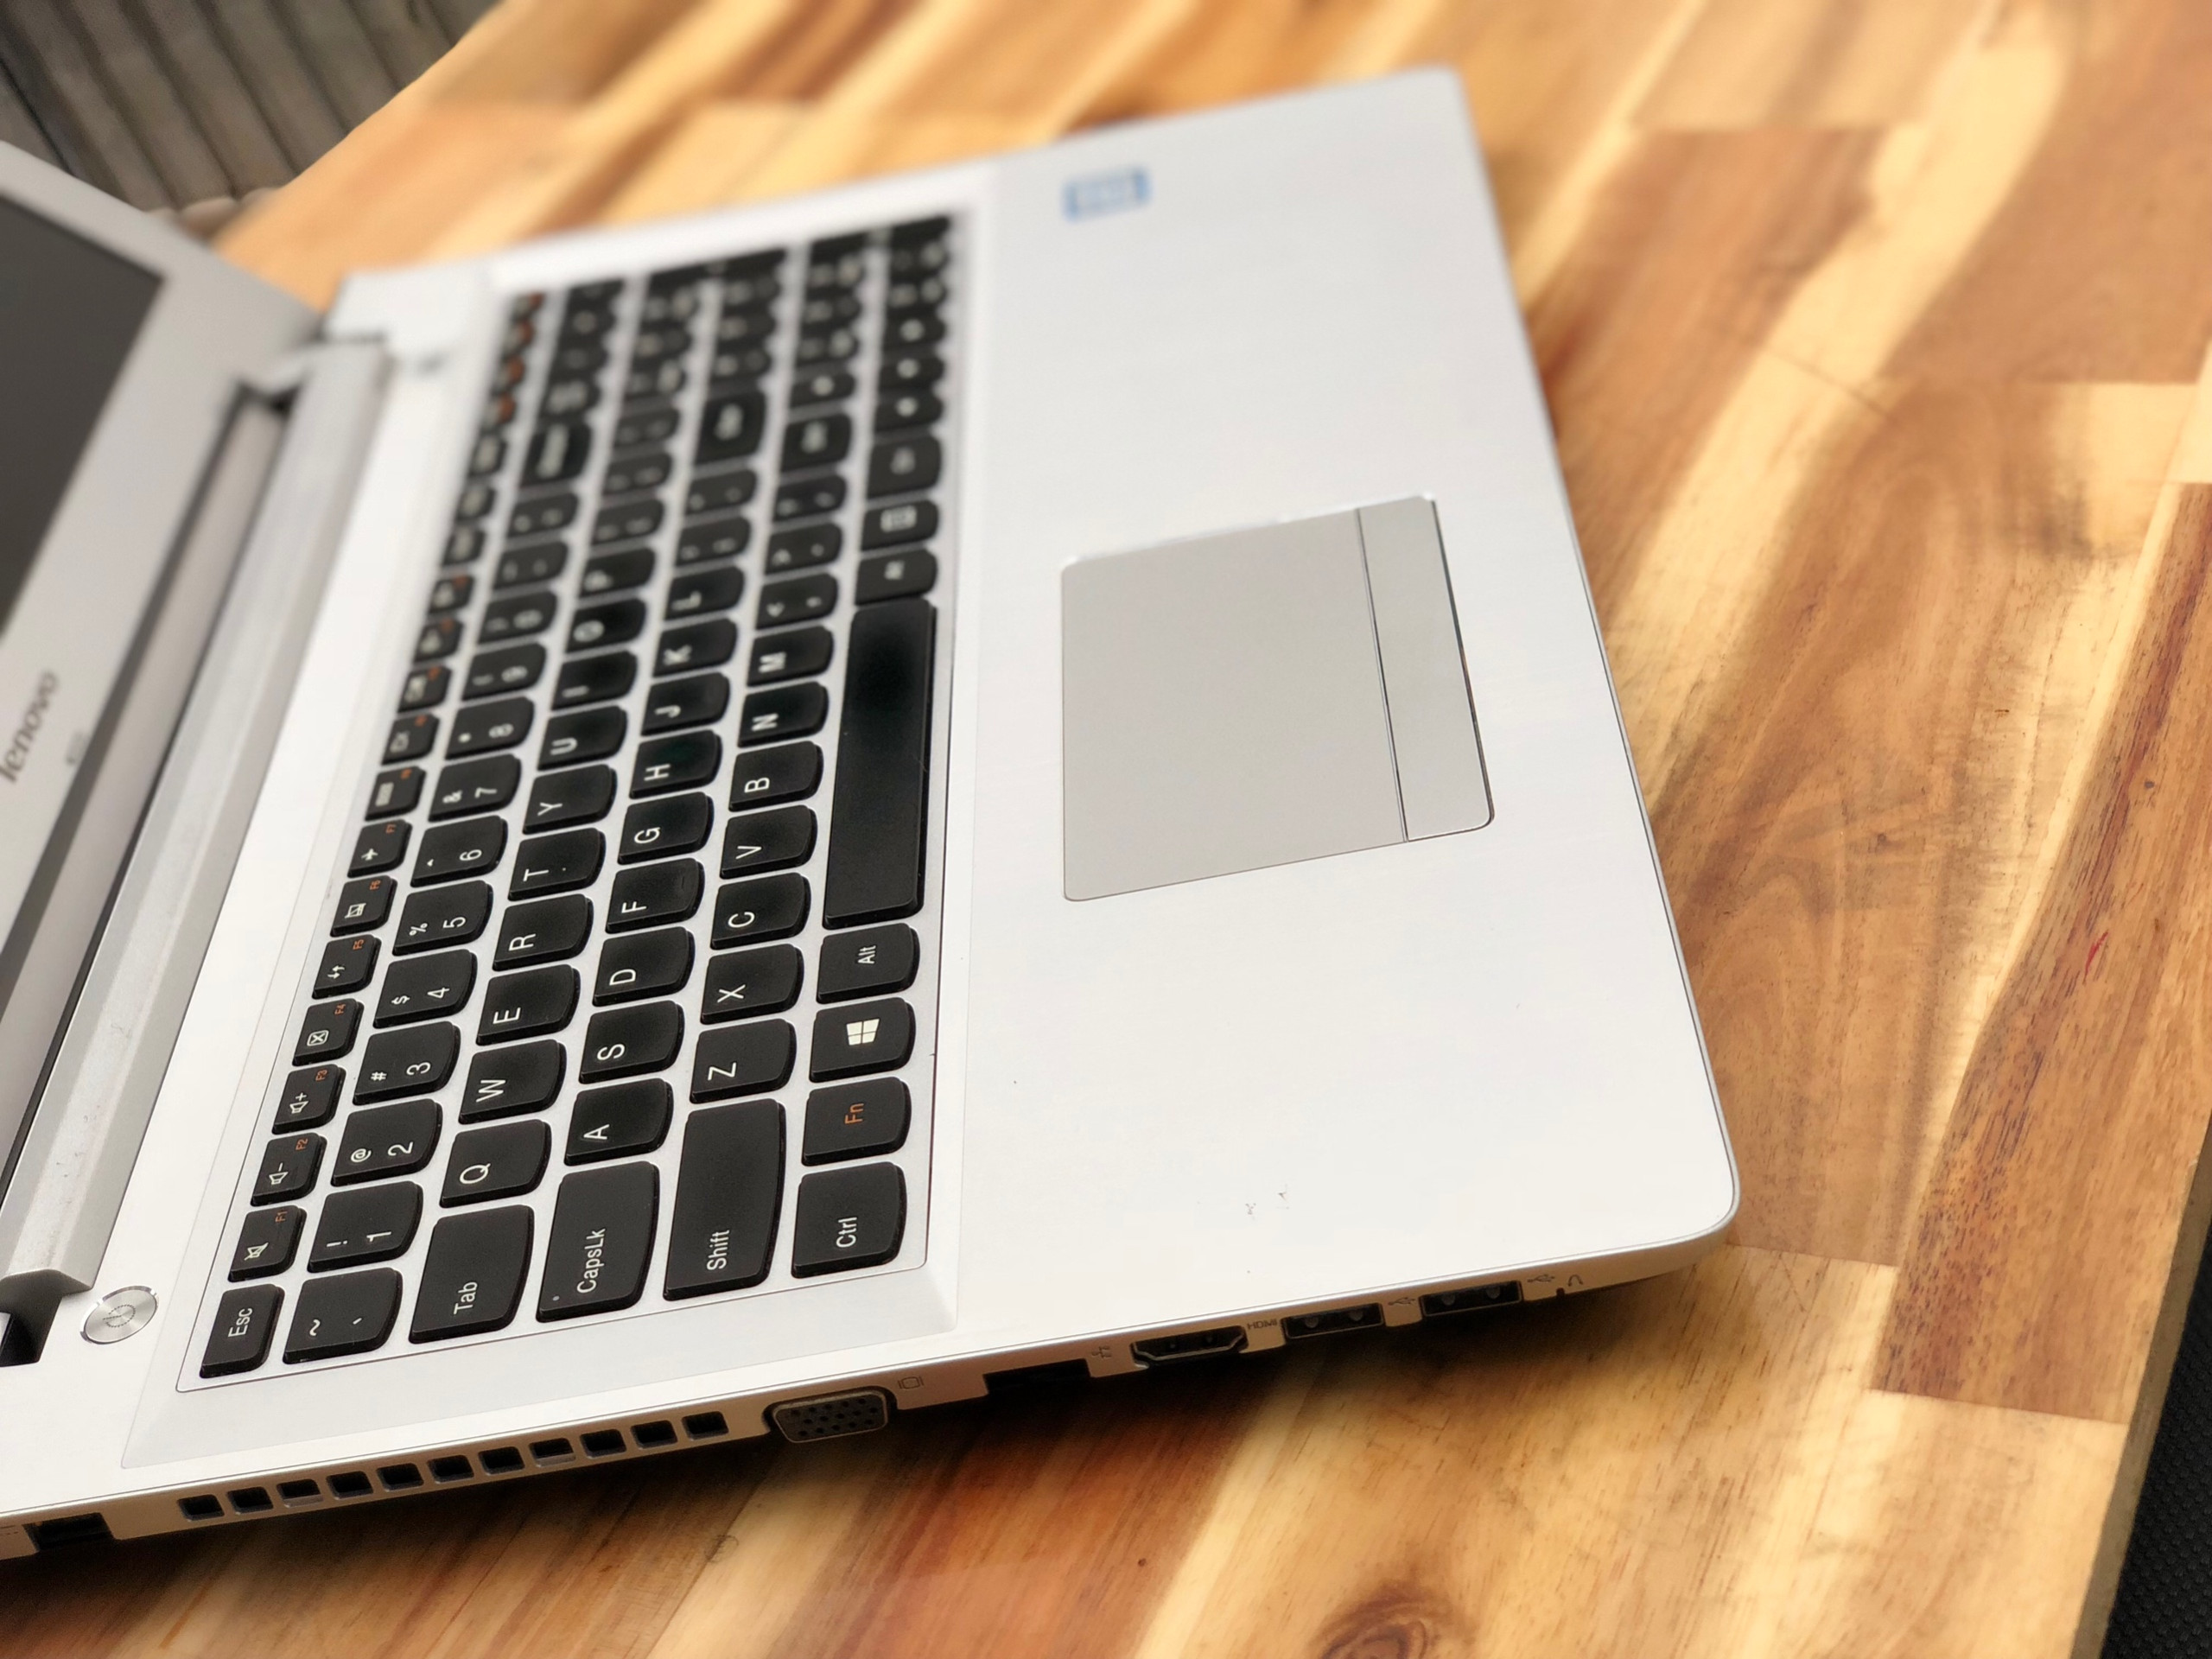 Laptop Lenovo ideapad 500-15ISK, I7 6500U 8G 1T Vga 4G Full HD Like new zin 100% Giá rẻ2